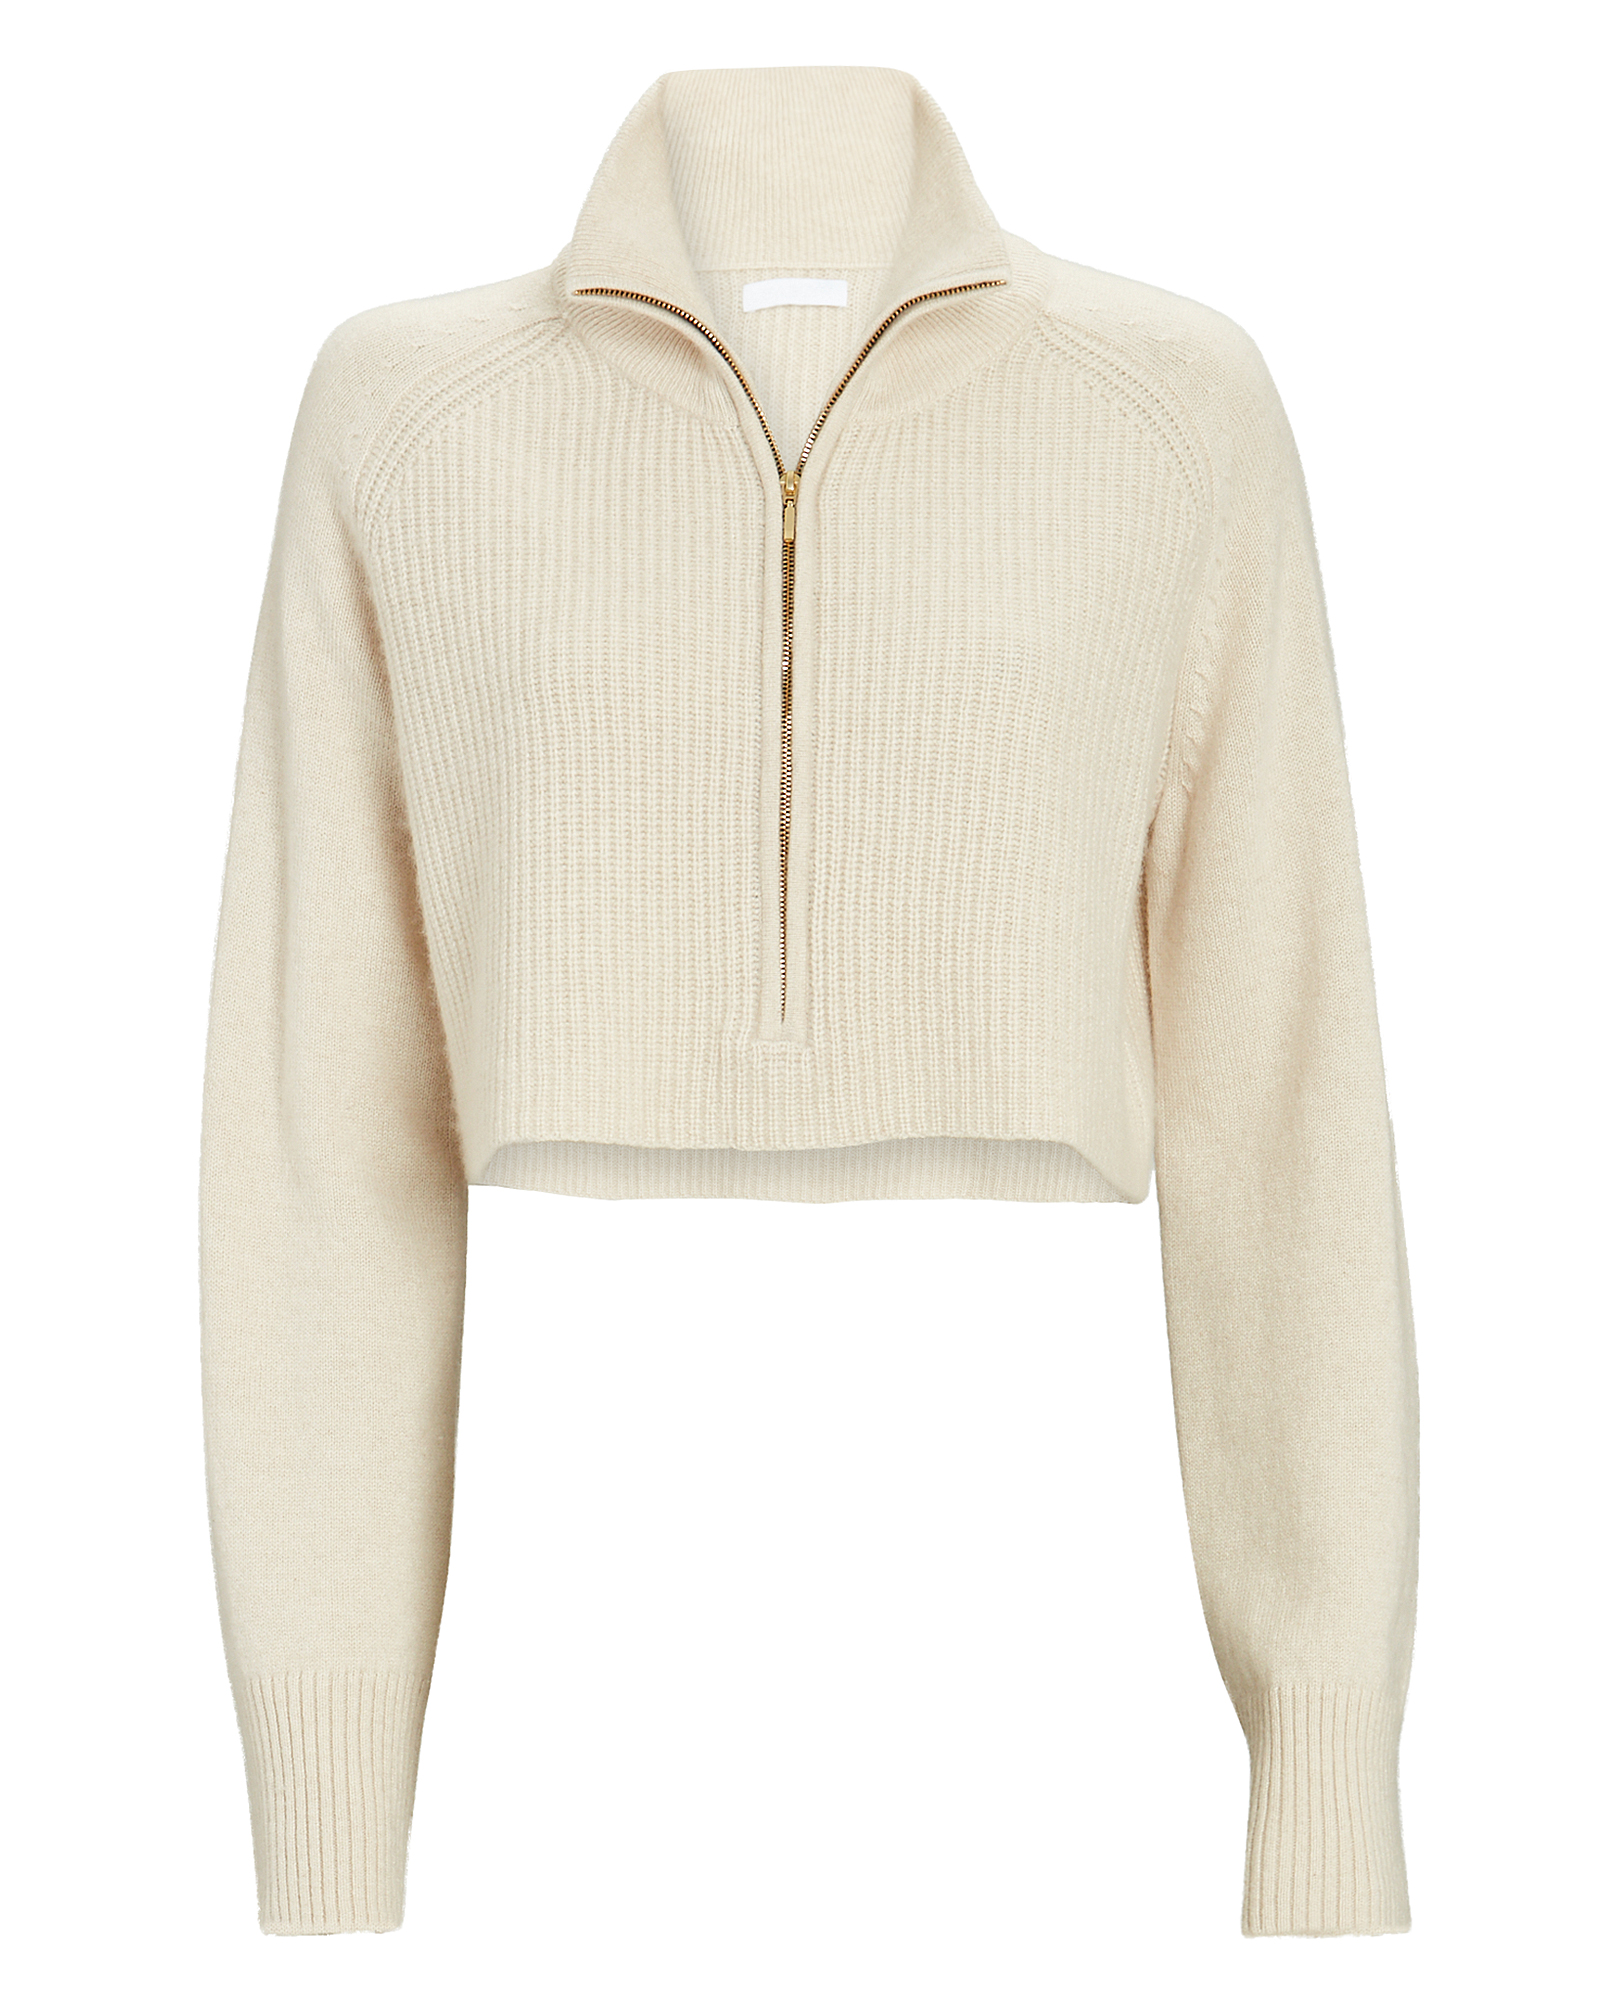 Sablyn SABLYN NASH CROPPED CASHMERE SWEATER